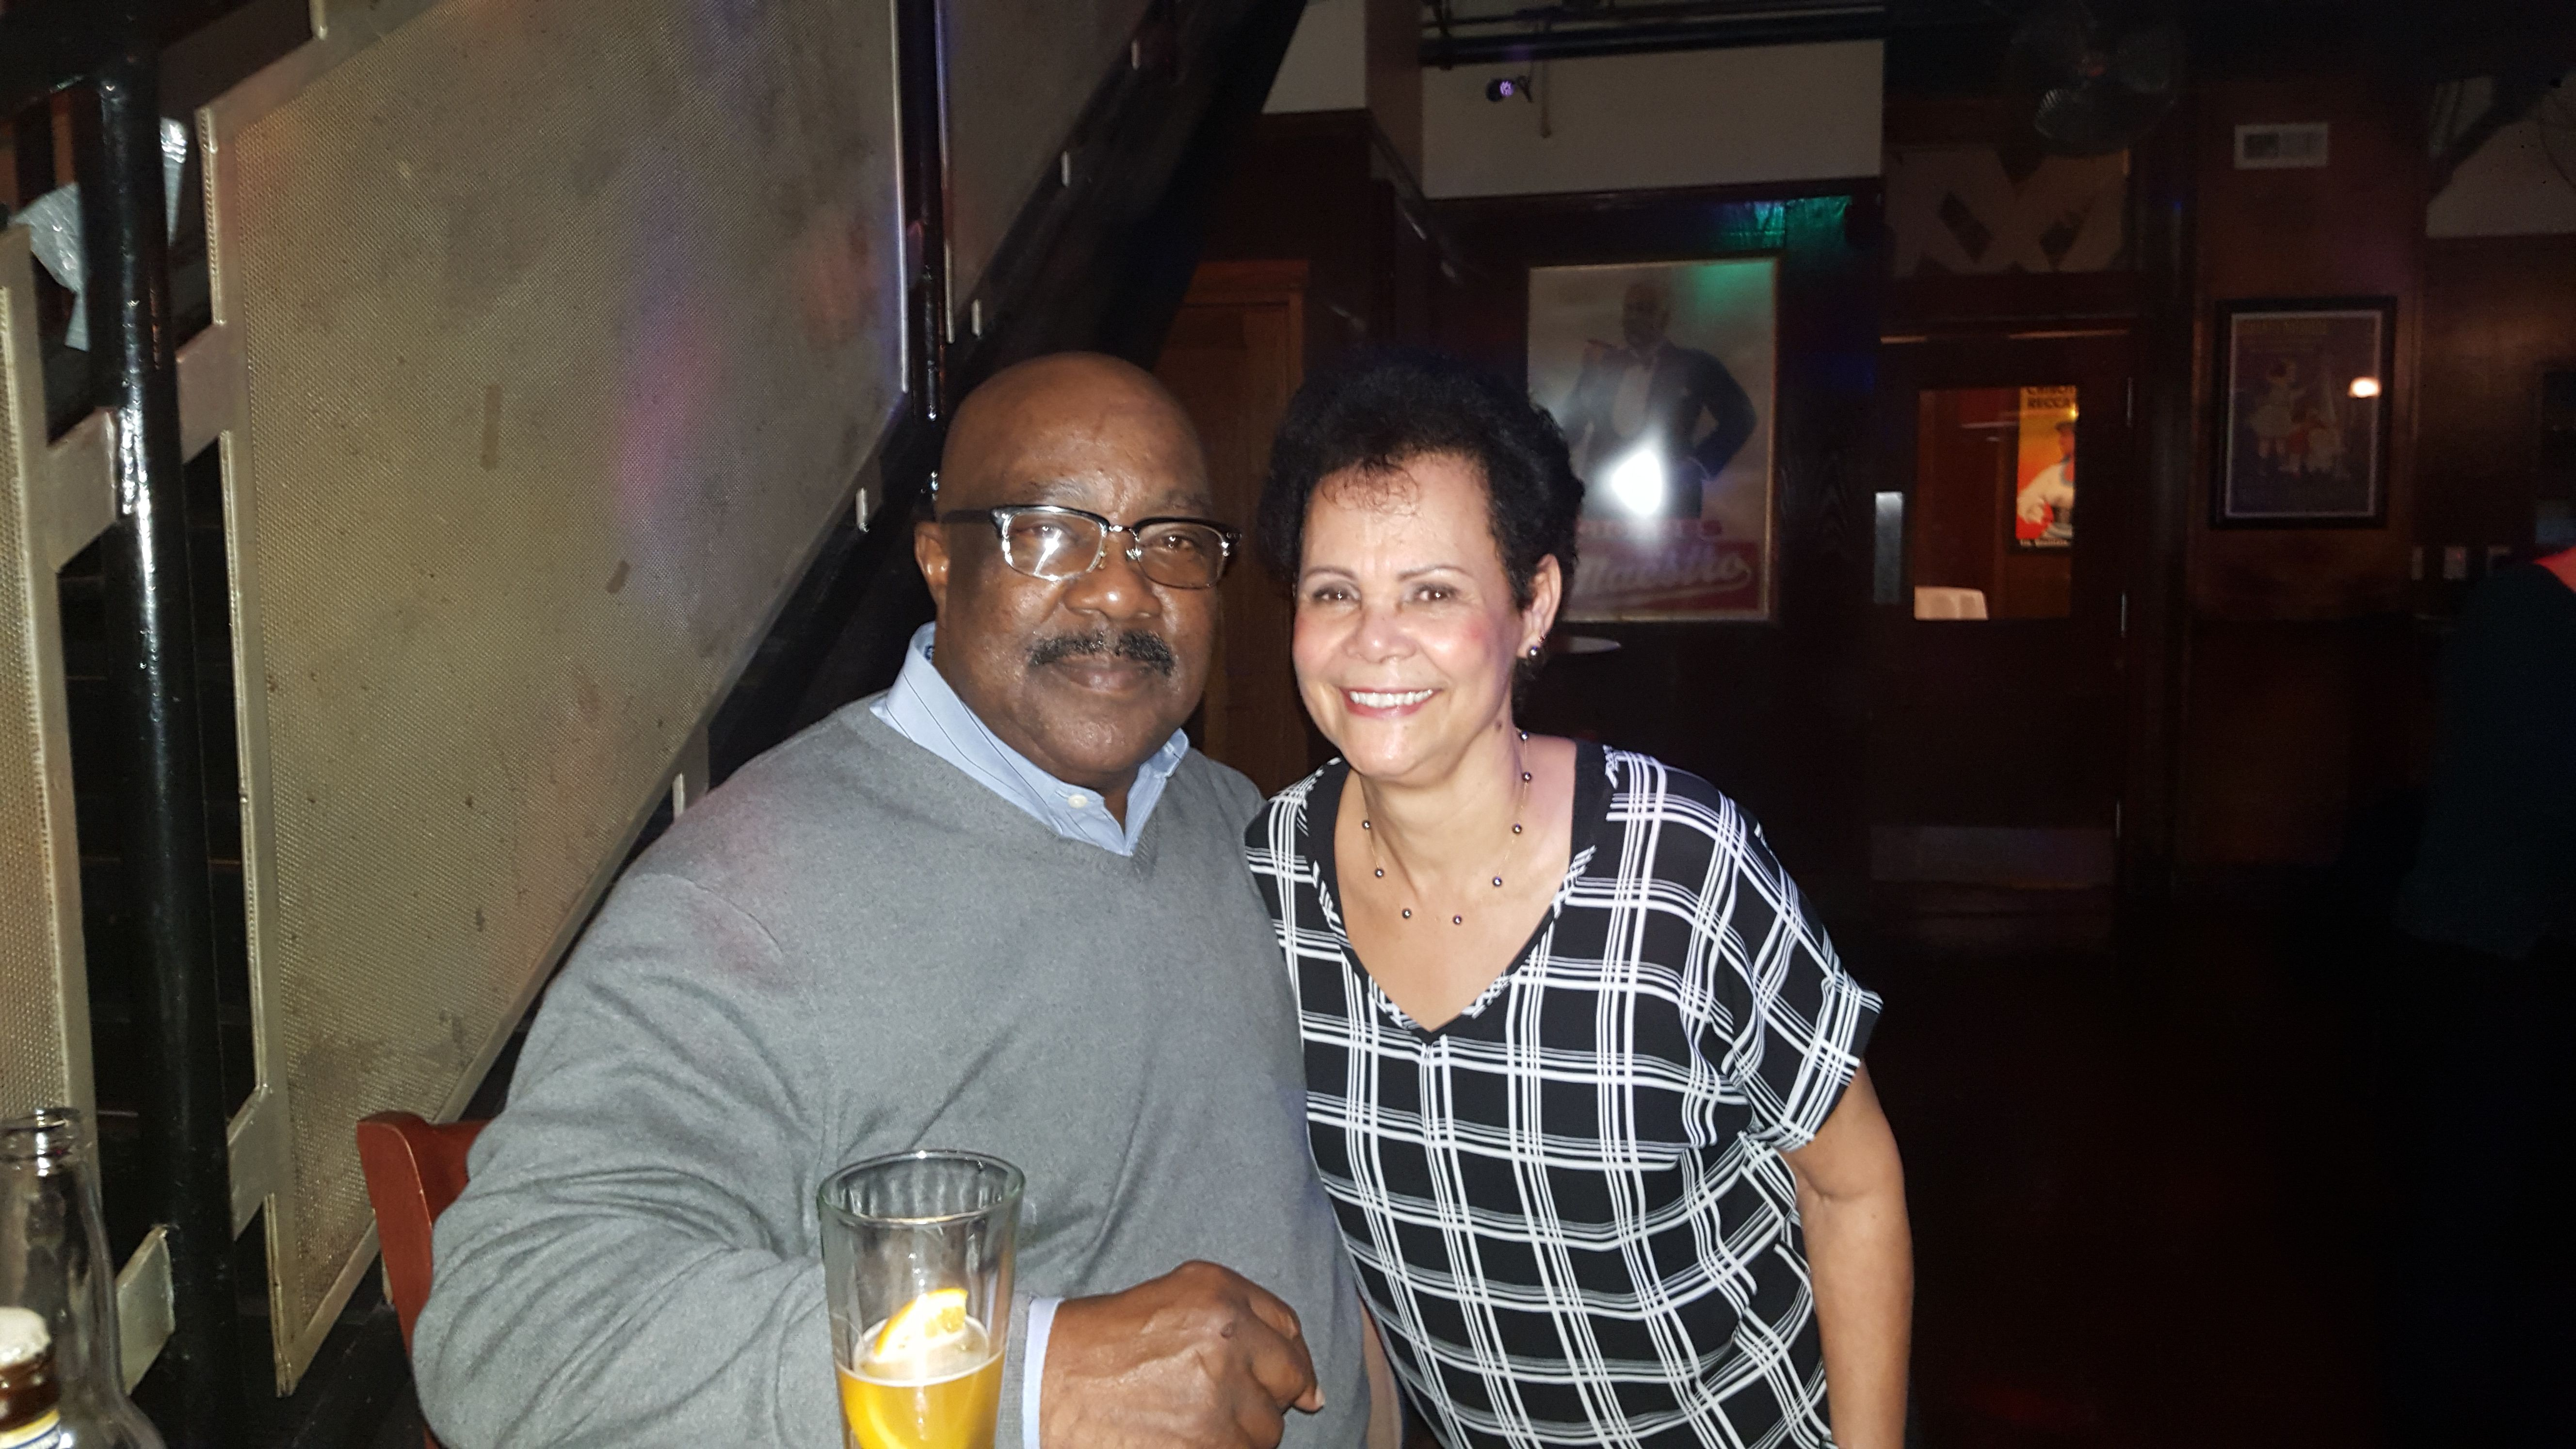 singles over 50 in mc grann Plentyoffish dating forums are a place to meet singles and get dating advice or share dating experiences etc hopefully you will all i'm way-y-y-y- over 50.